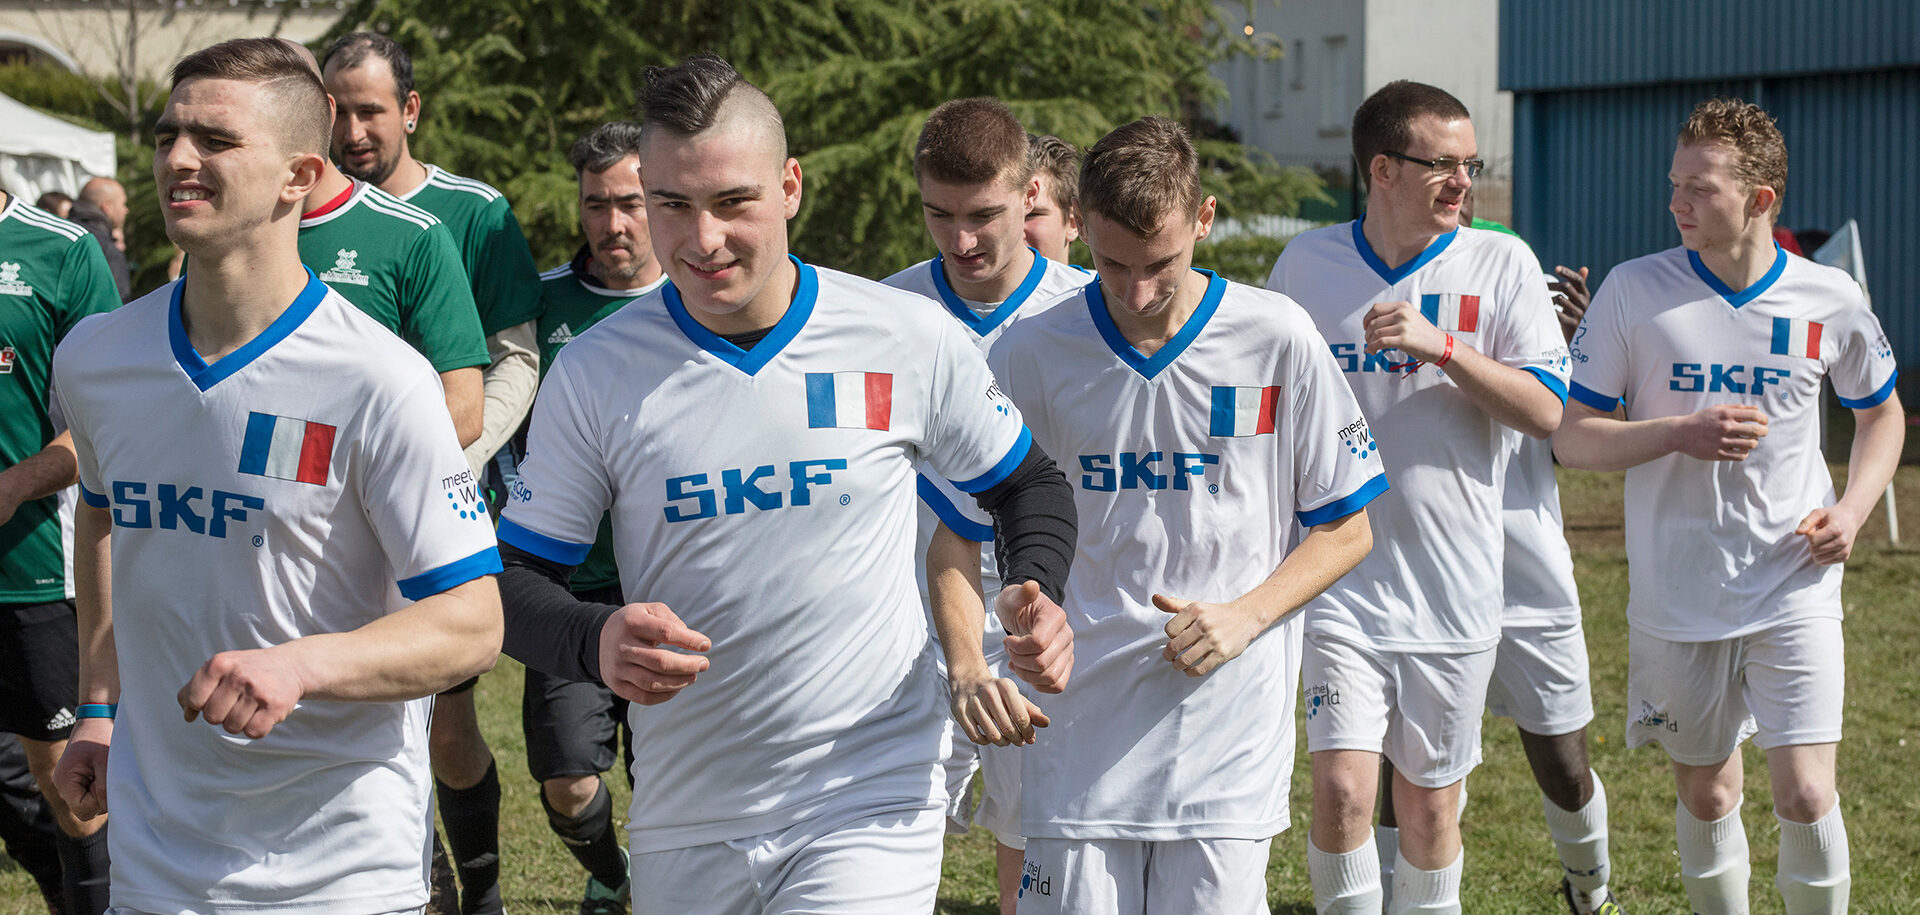 Meet the World, a football tournament organized in France by SKF in partnership with Special Olympics.